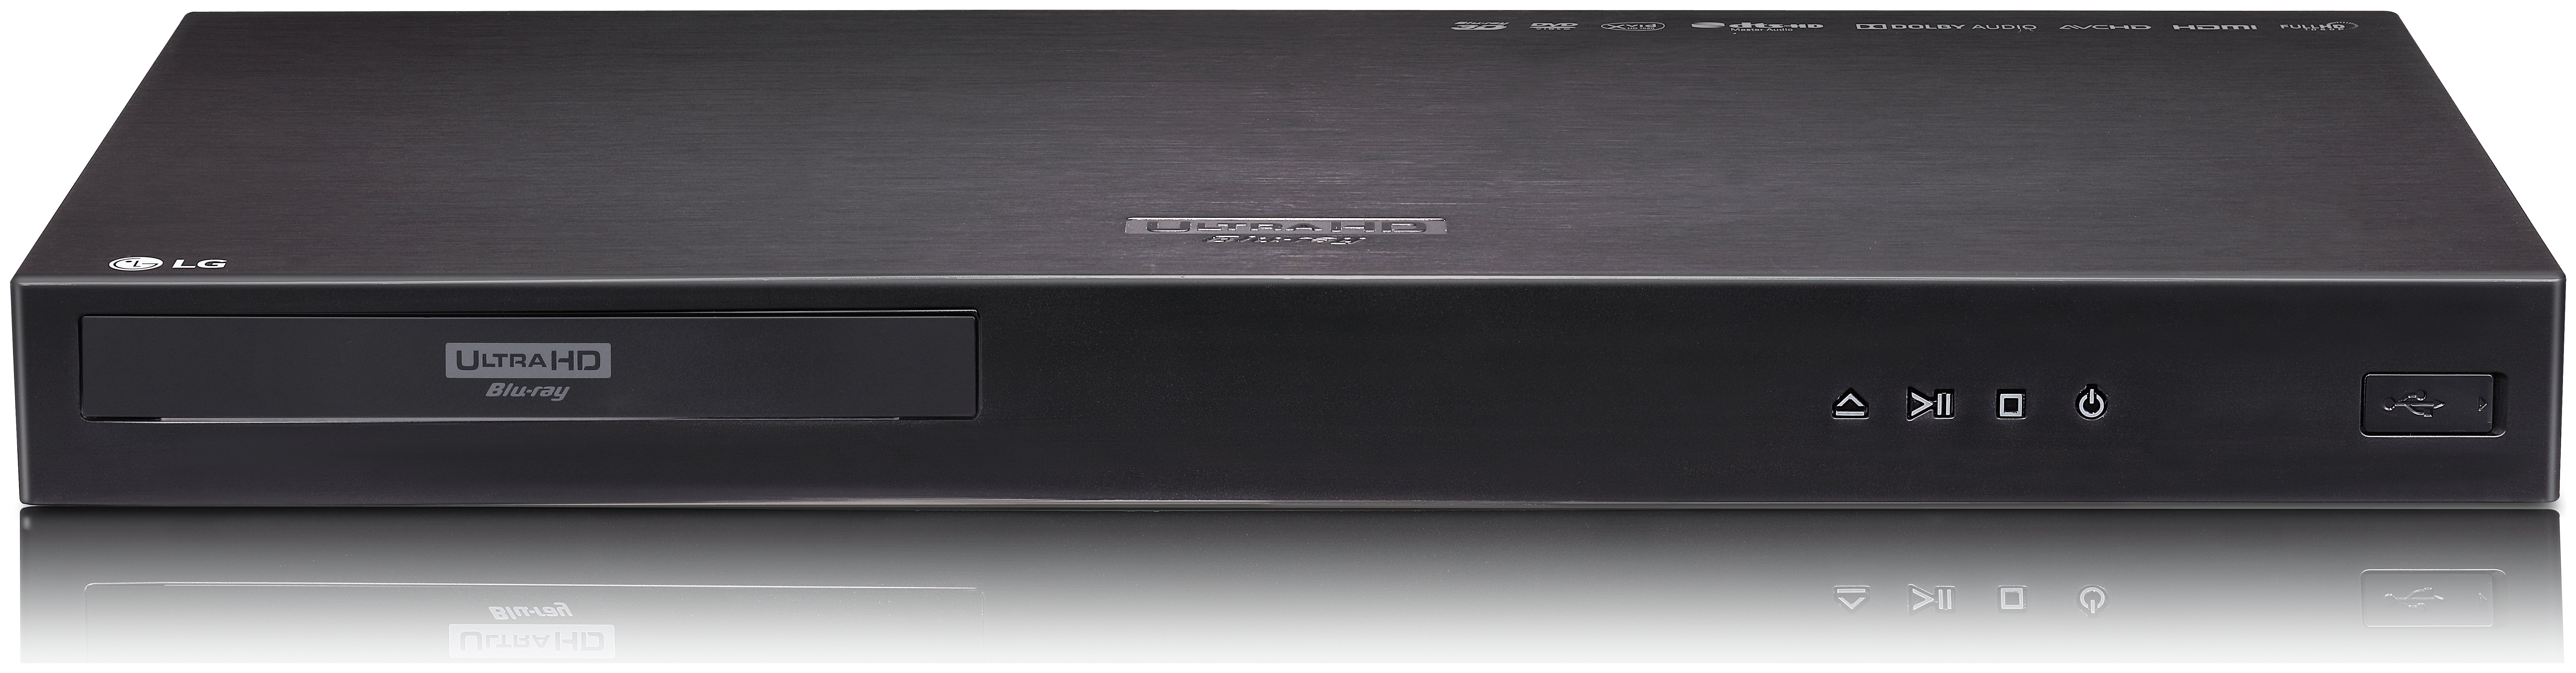 LG UP970 4K UHD Blu-ray/DVD Player with HDR Compatibility